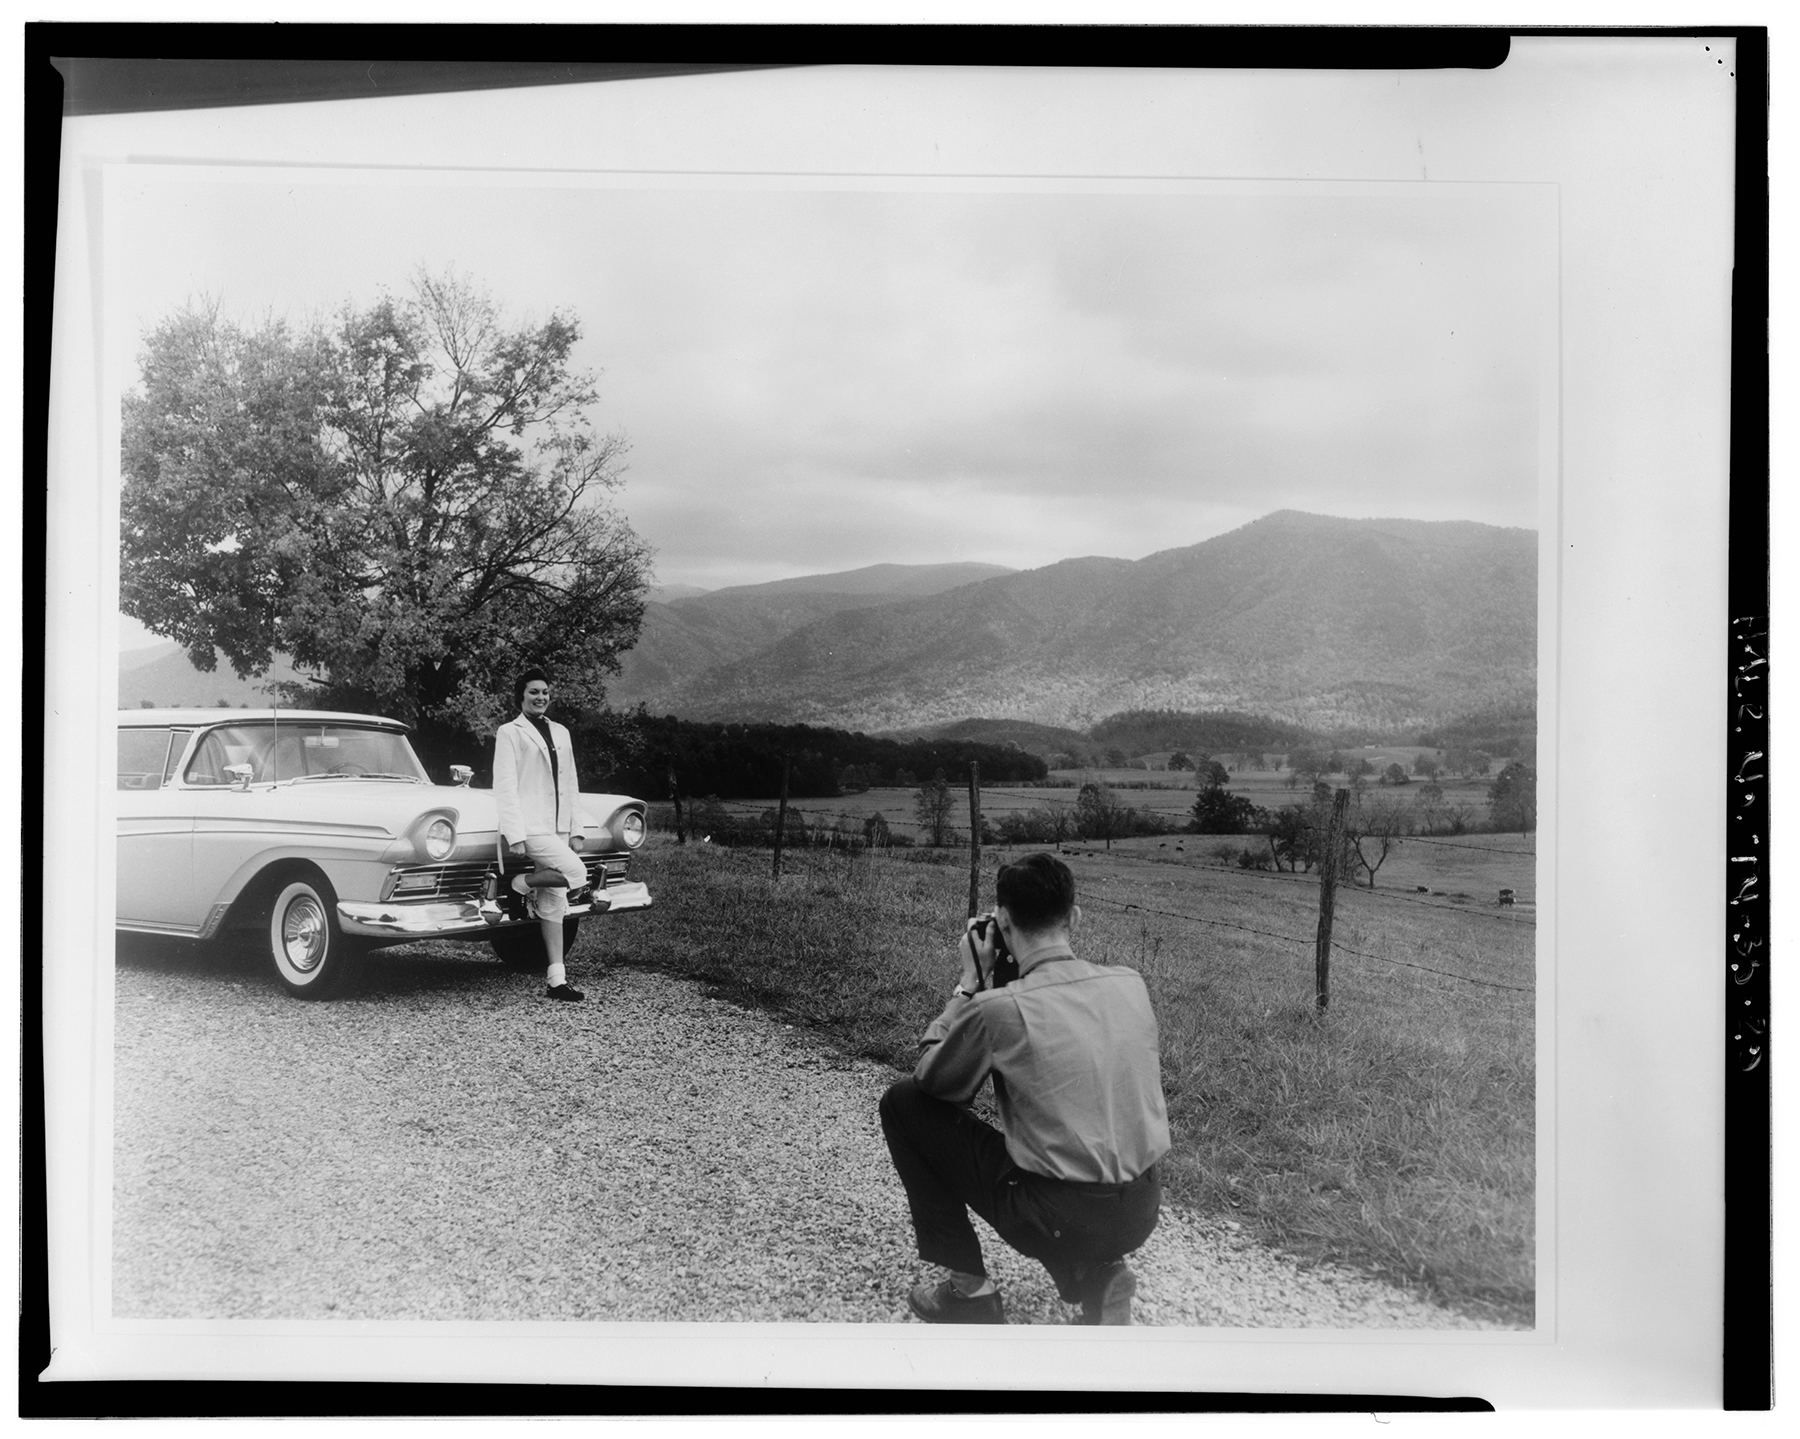 a man takes a photo of a girl leaning against a car